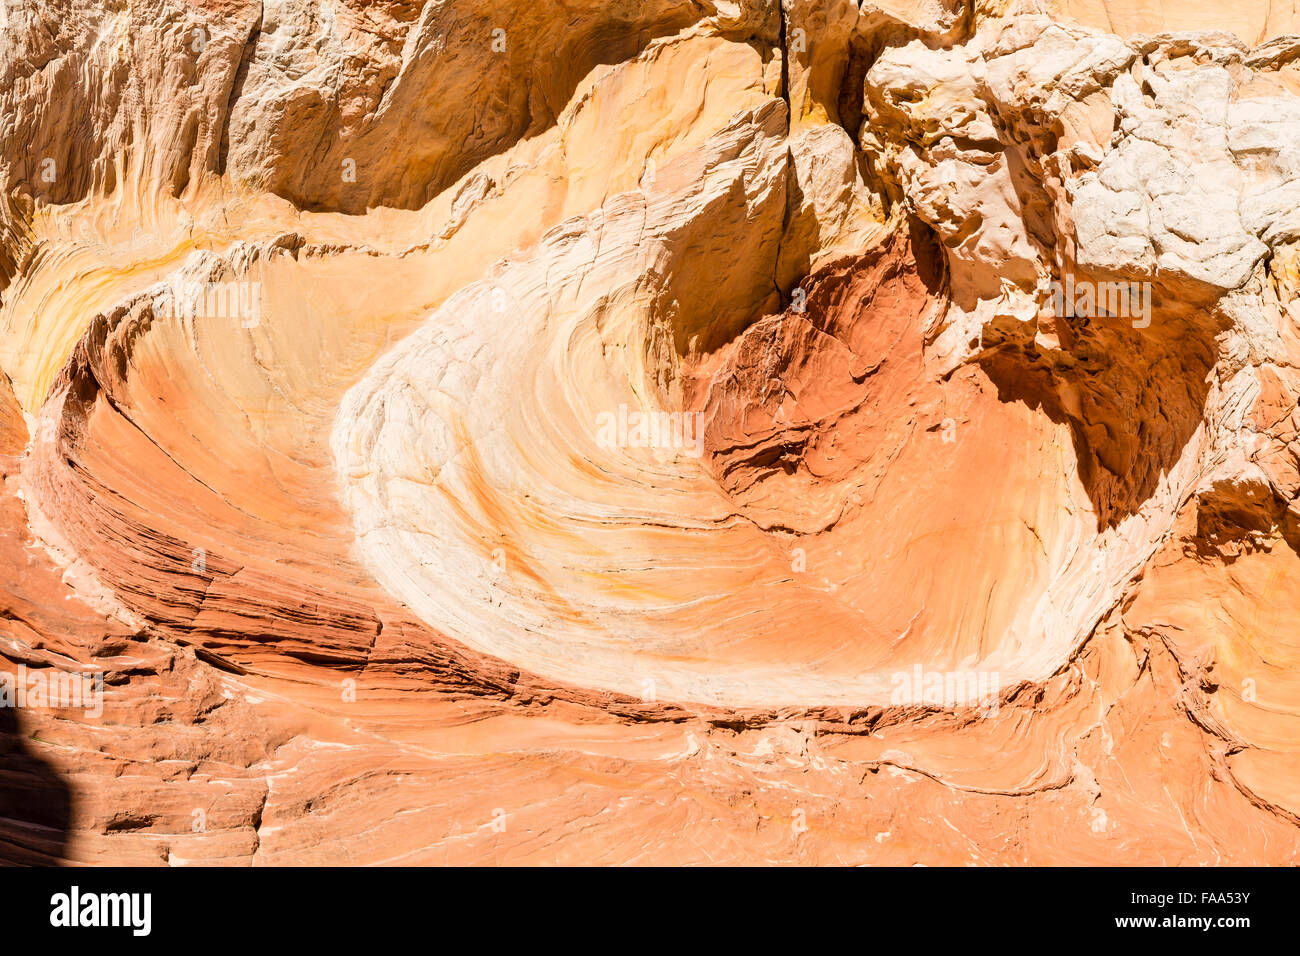 A rock formation gives the illusion of a giant palette of oil paint in the unique and remote White Pocket rock formations - Stock Image